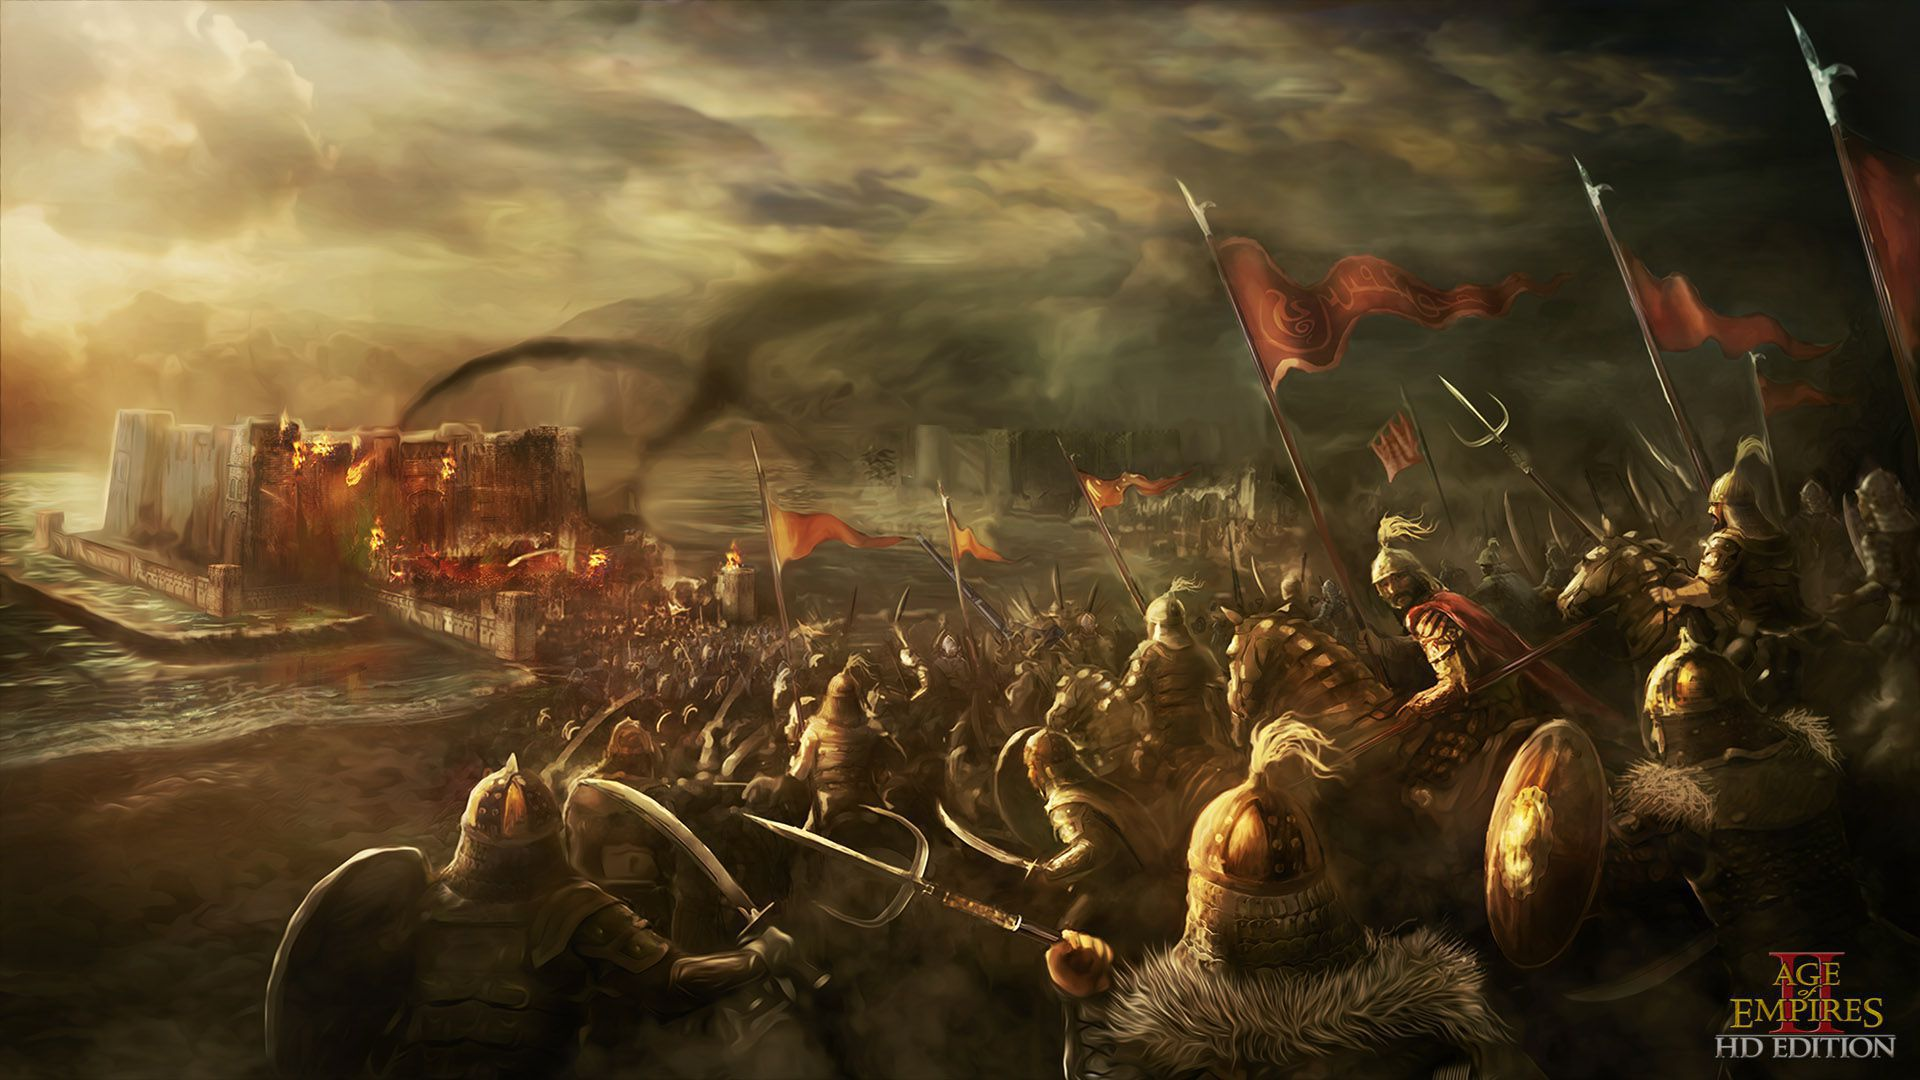 Age Of Empires 2 Gallery